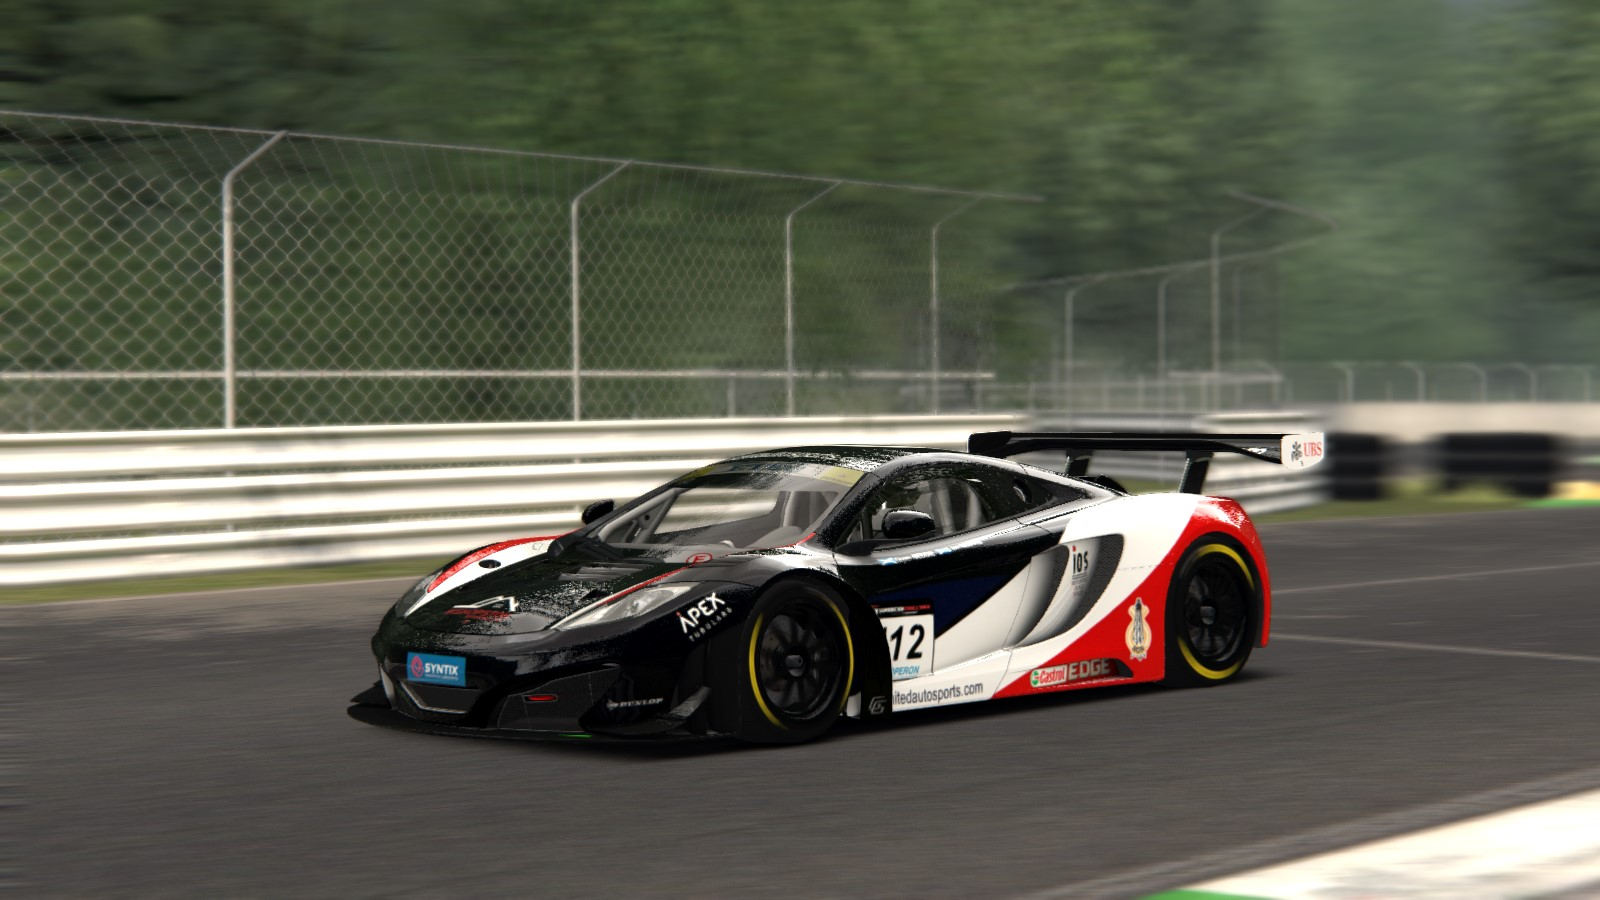 Screenshot_mclaren_mp412c_gt3_matra-park_17-4-115-13-35-37.jpg